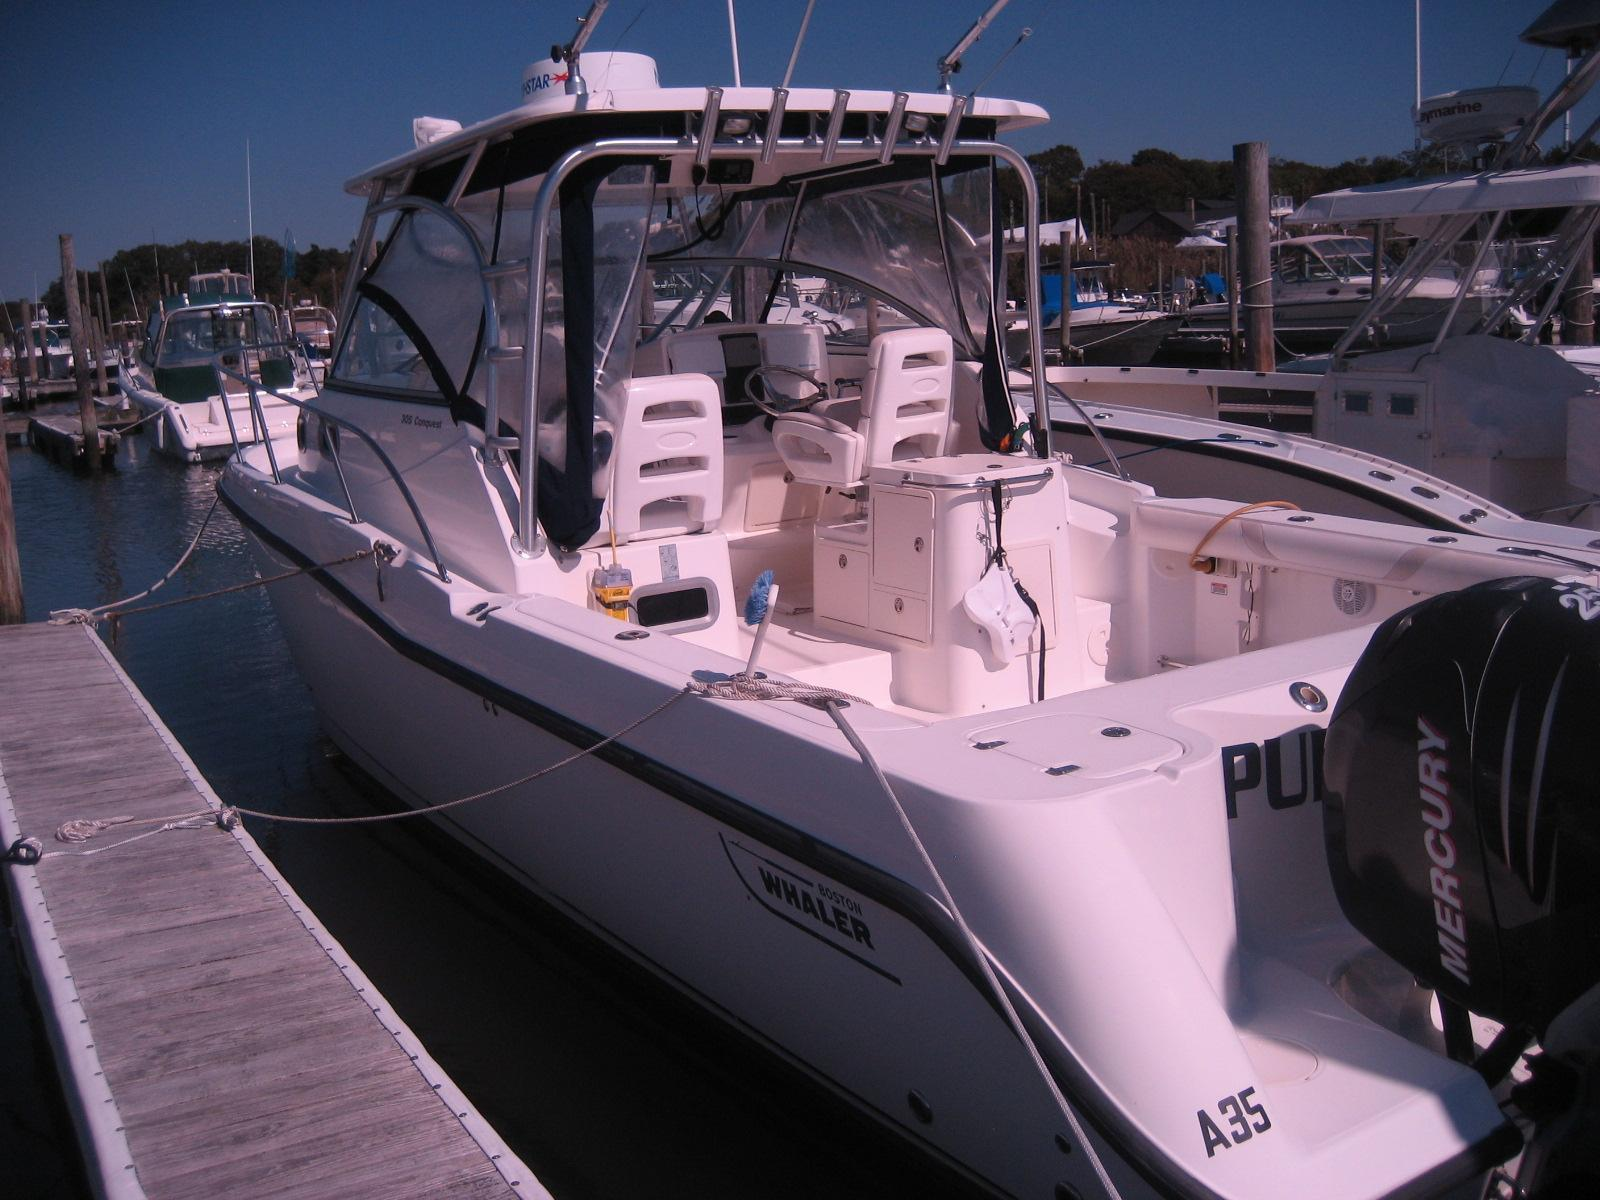 Boston Whaler Gls Brick7 Boats